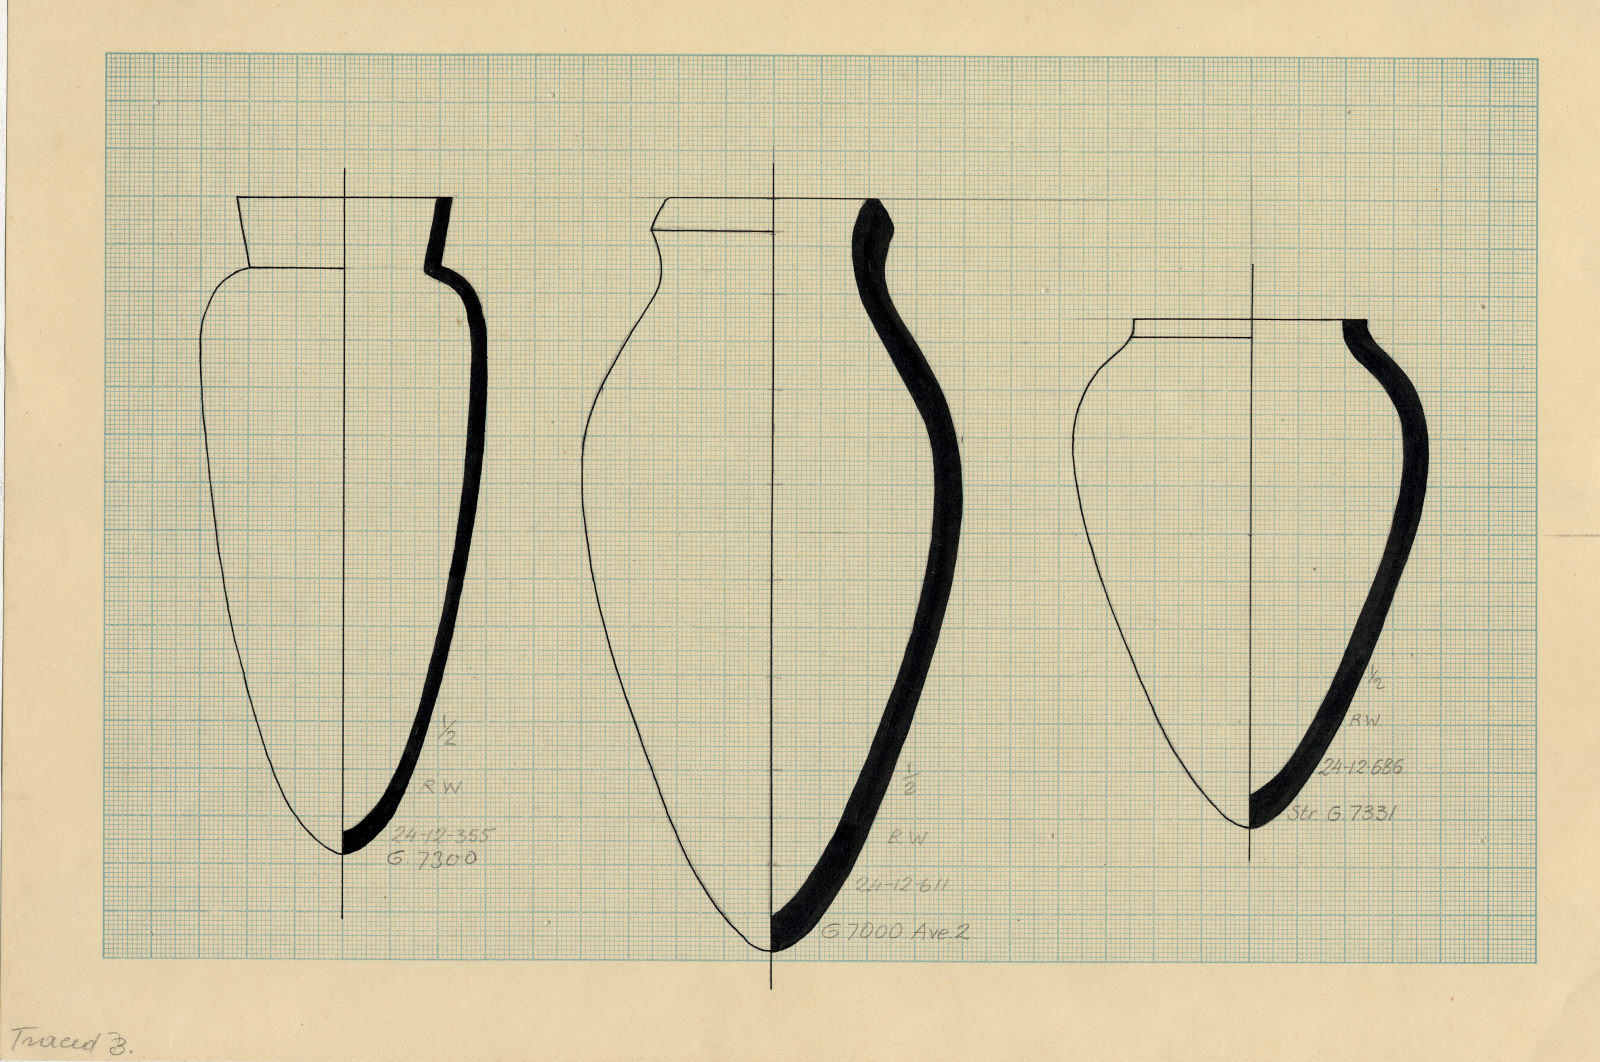 Drawings: Pottery, jars from Street G 7200 and Avenue G 2